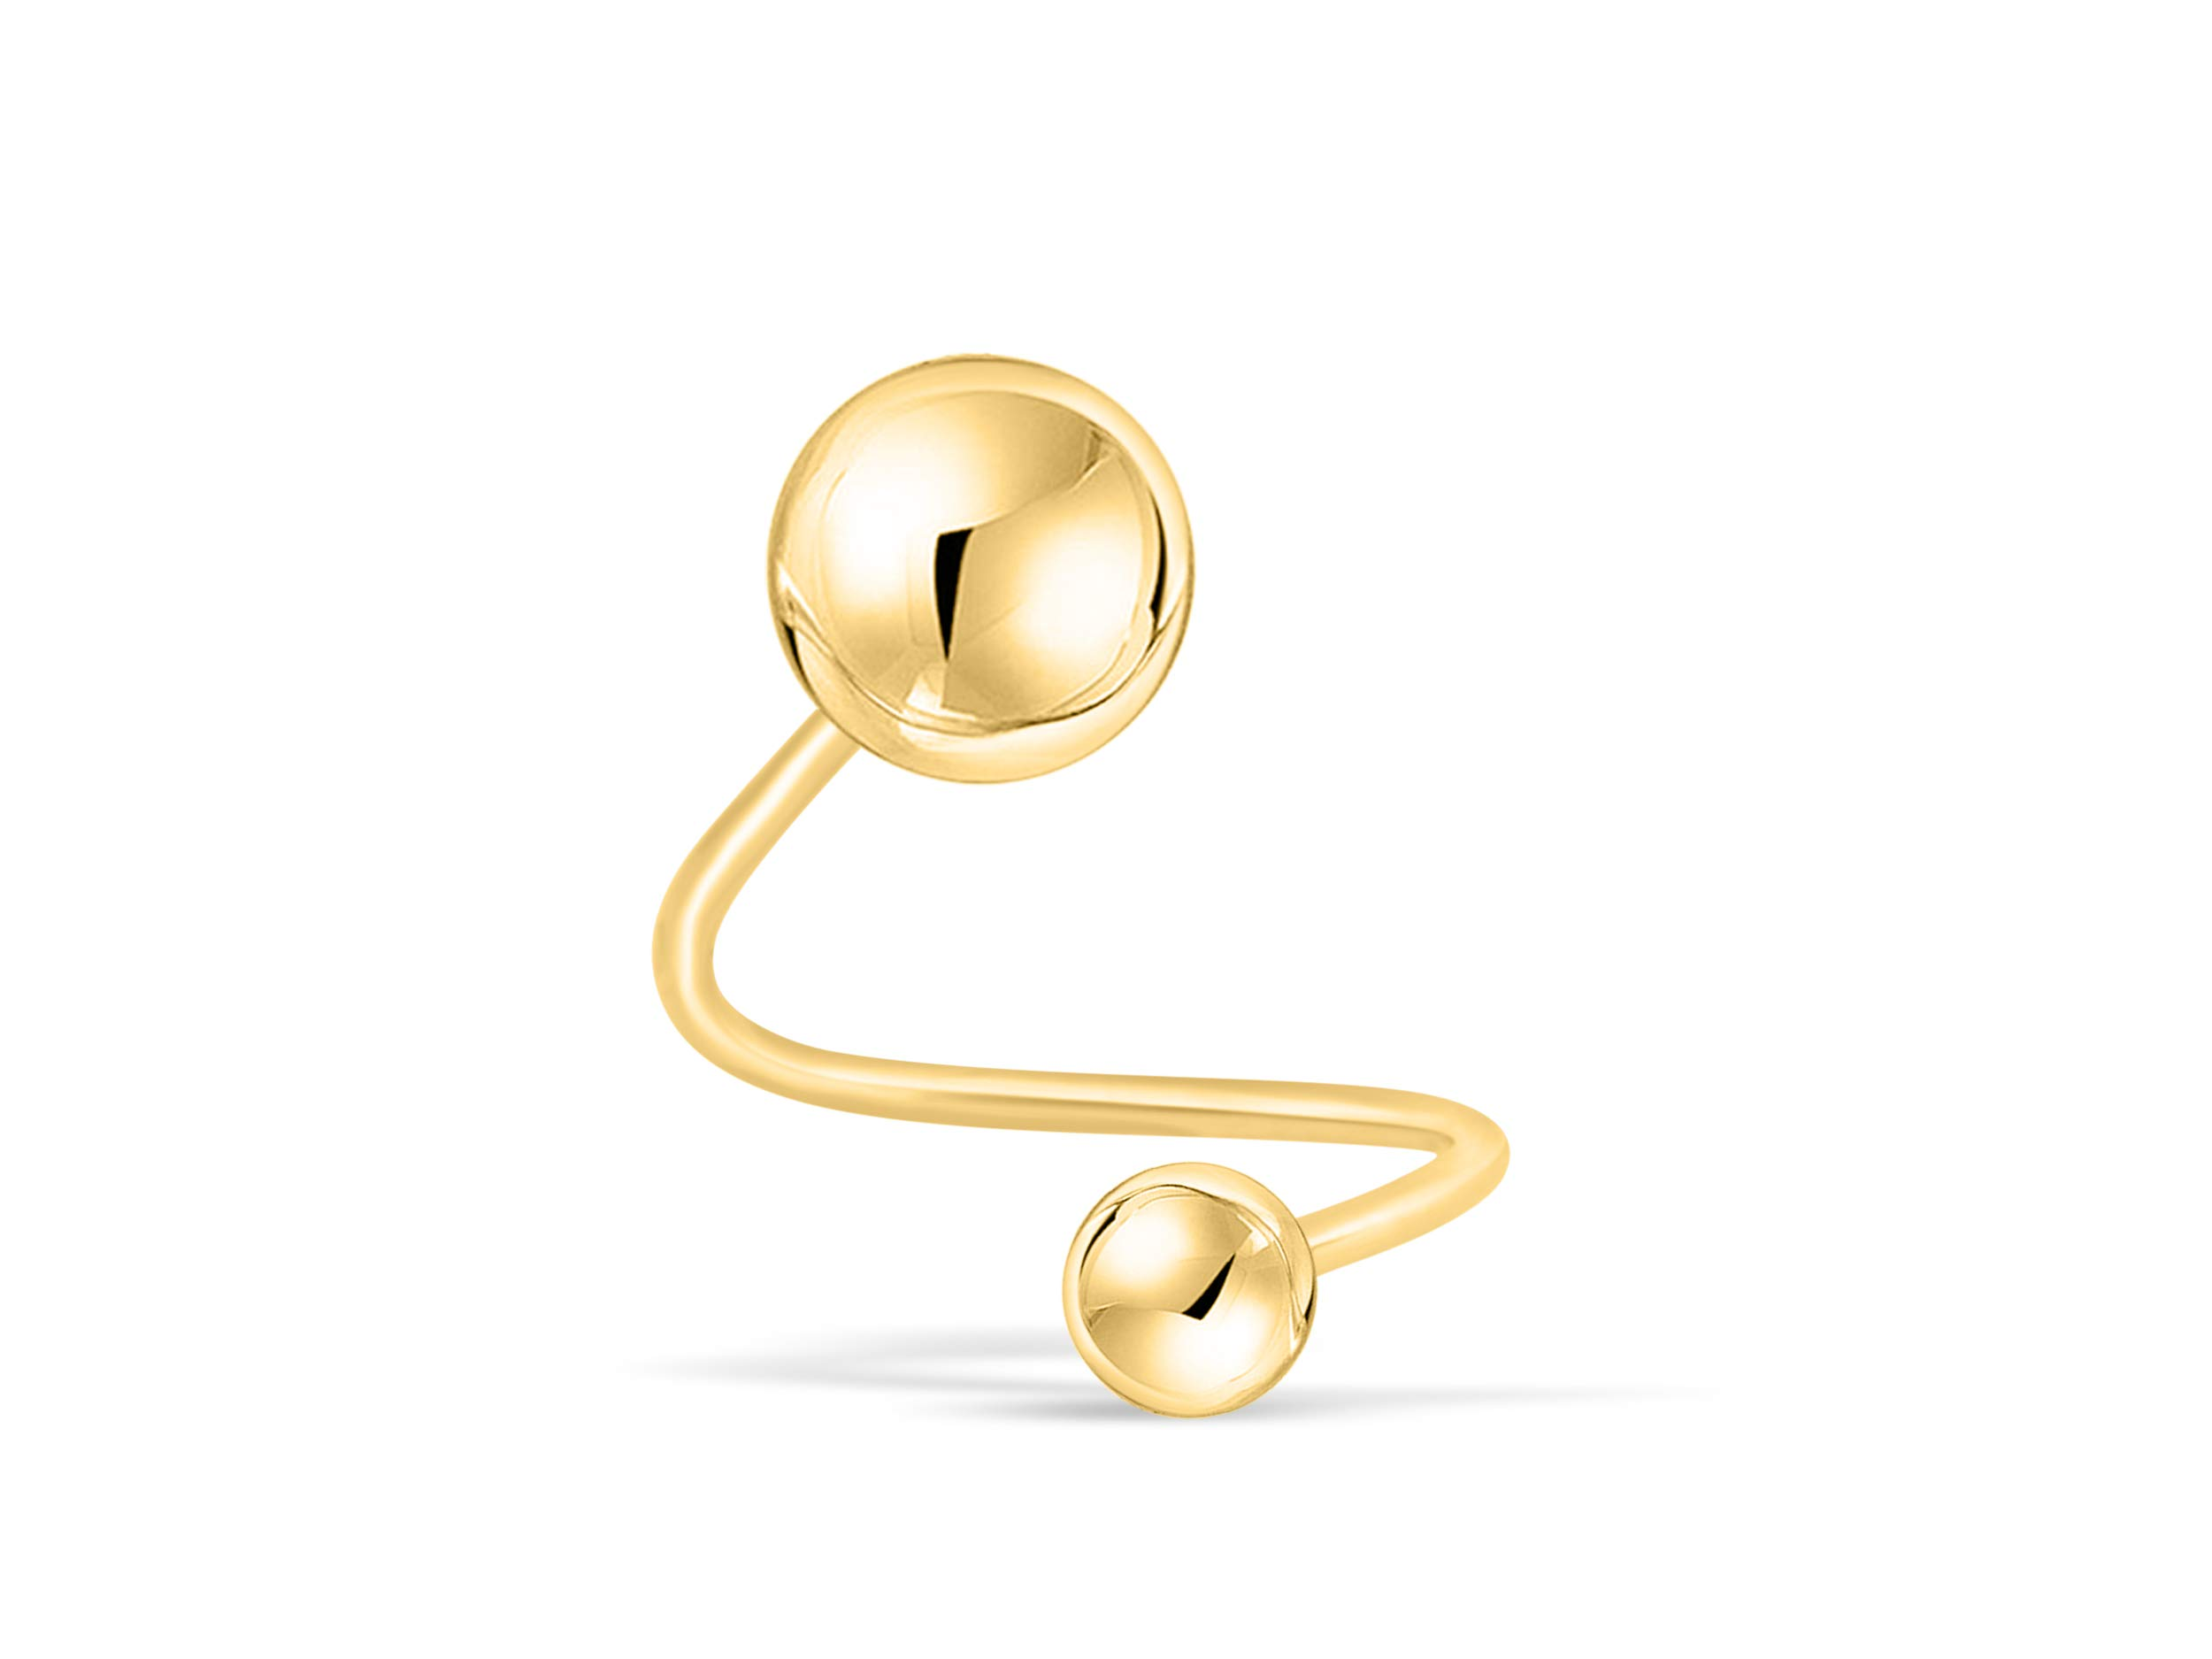 ONDAISY 14K Real Solid Yellow Gold Disco Round Ball 5mm 20g Gauge Barbell Round Ball Twist Spiral Ear Stud Earring Piercing For Women Girls